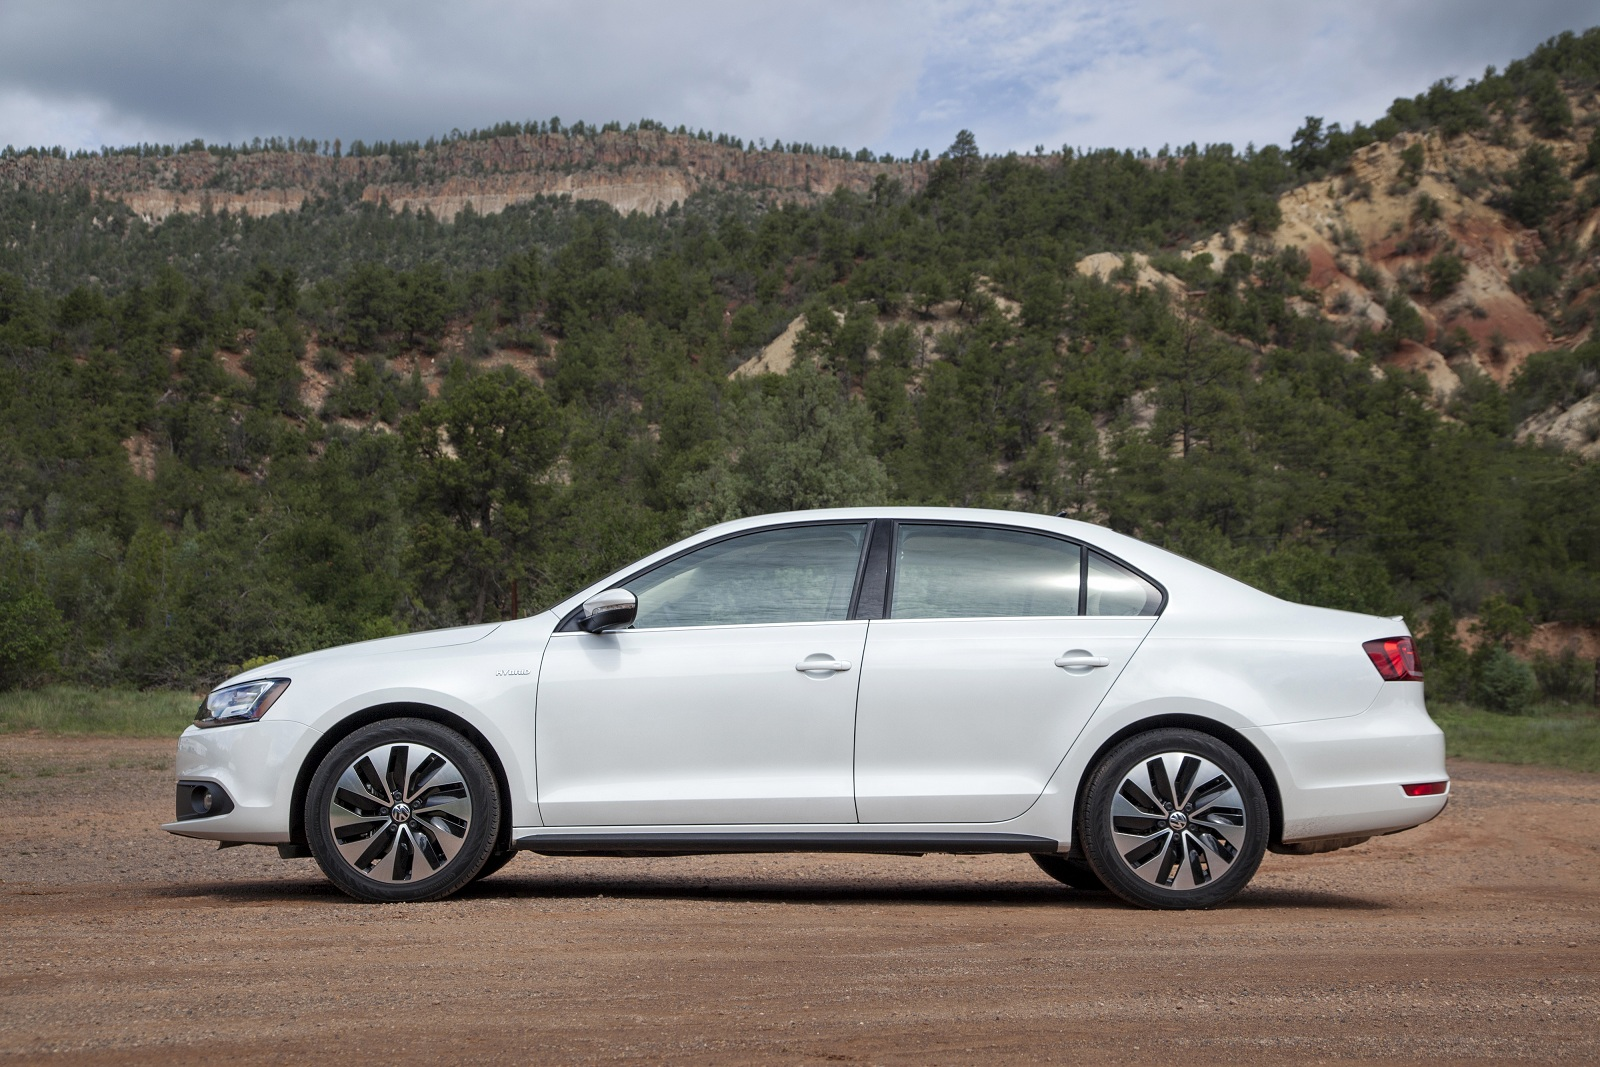 vw jetta hybrid epa rating   mpg